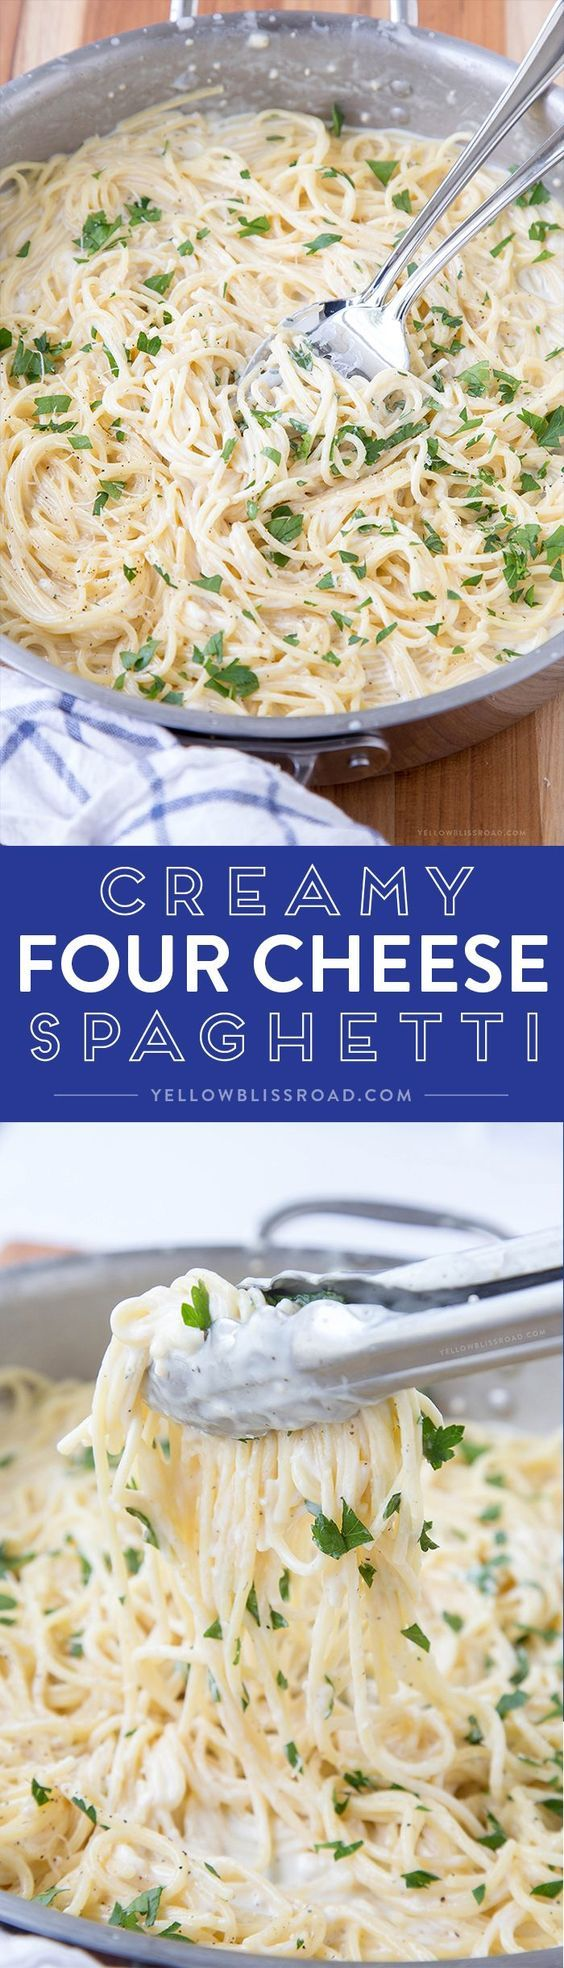 Creamy Four Cheese Spaghetti that's ready in 20 minutes! This is a fantastic and easy meal perfect for busy weeknights!